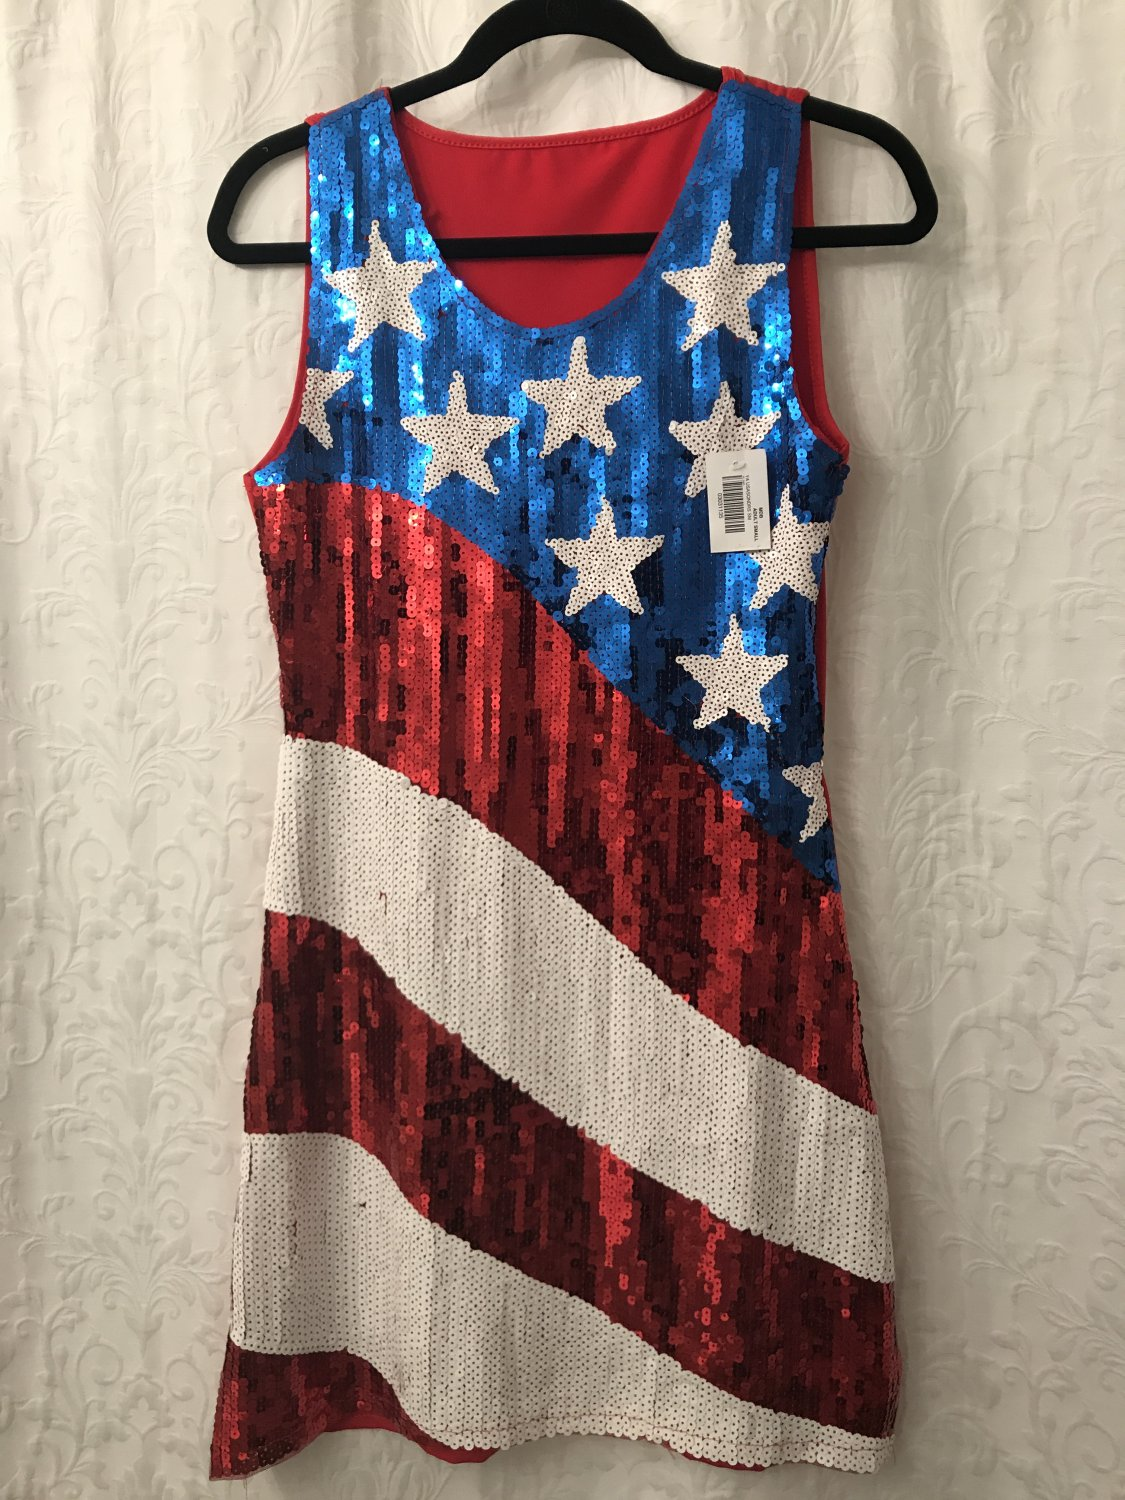 NEW Sequined Front Red Tank Dress - Sz S